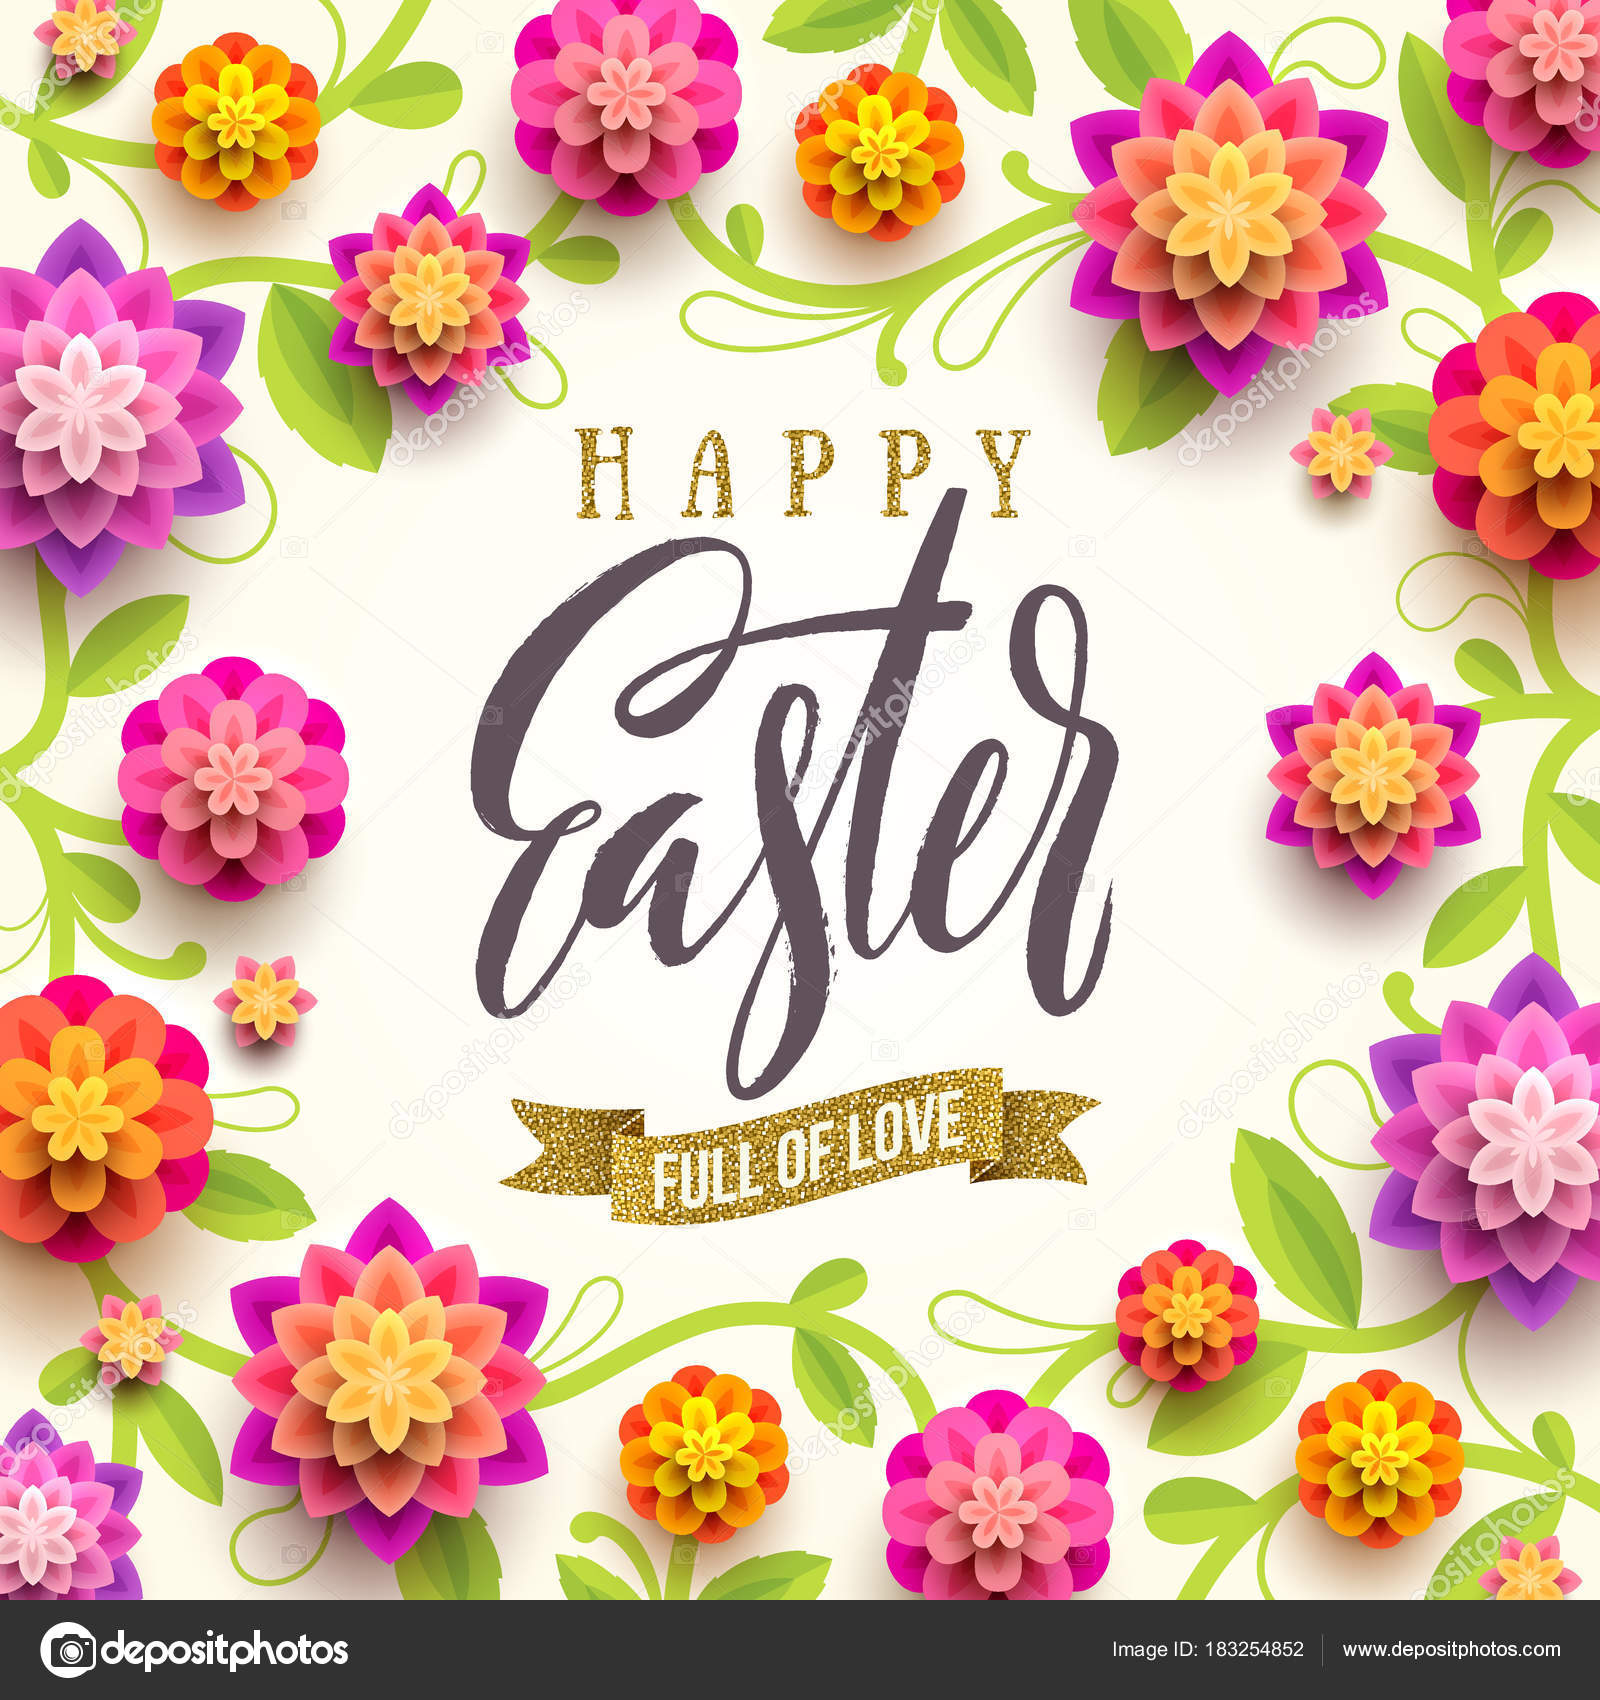 Easter greeting card easter brush calligraphy greeting with easter greeting card easter brush calligraphy greeting with glitter gold ribbon and paper flowers background m4hsunfo